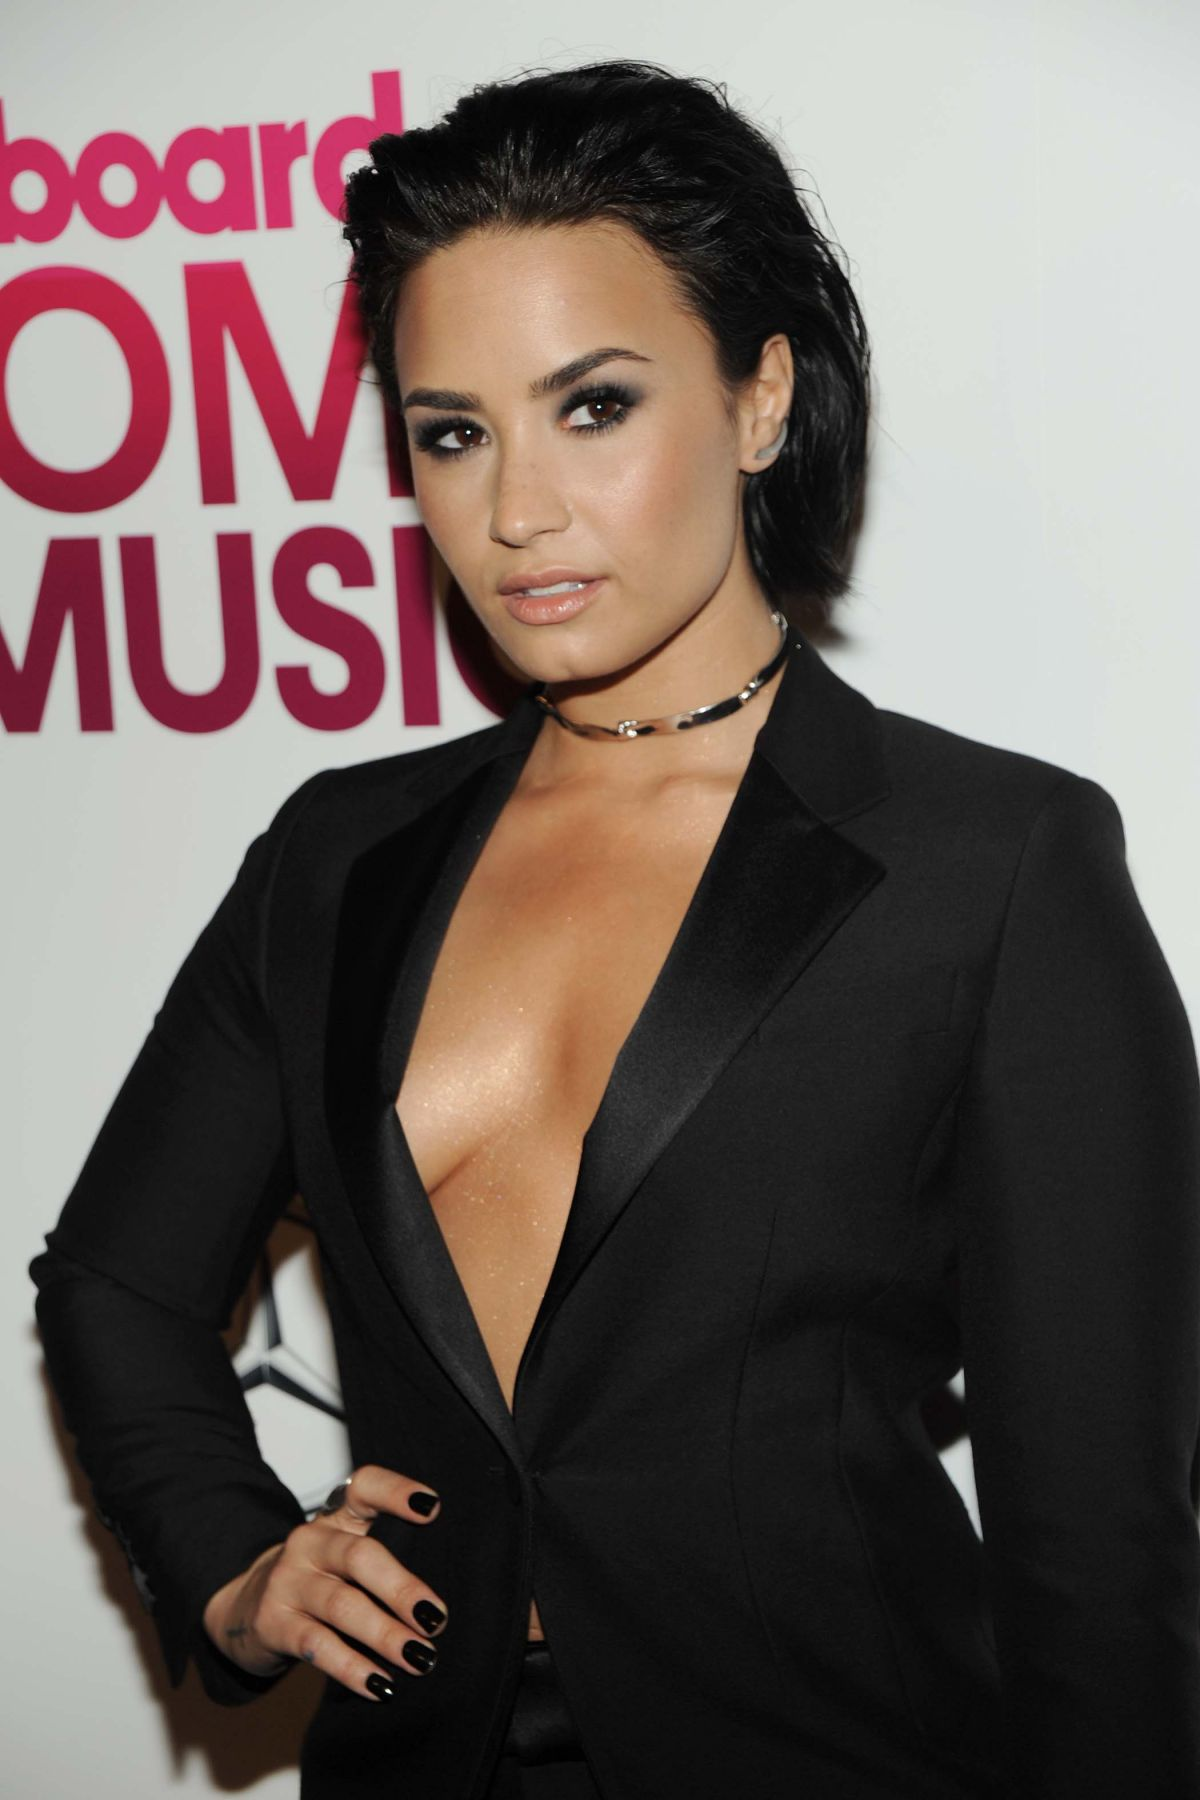 demi lovato - photo #21